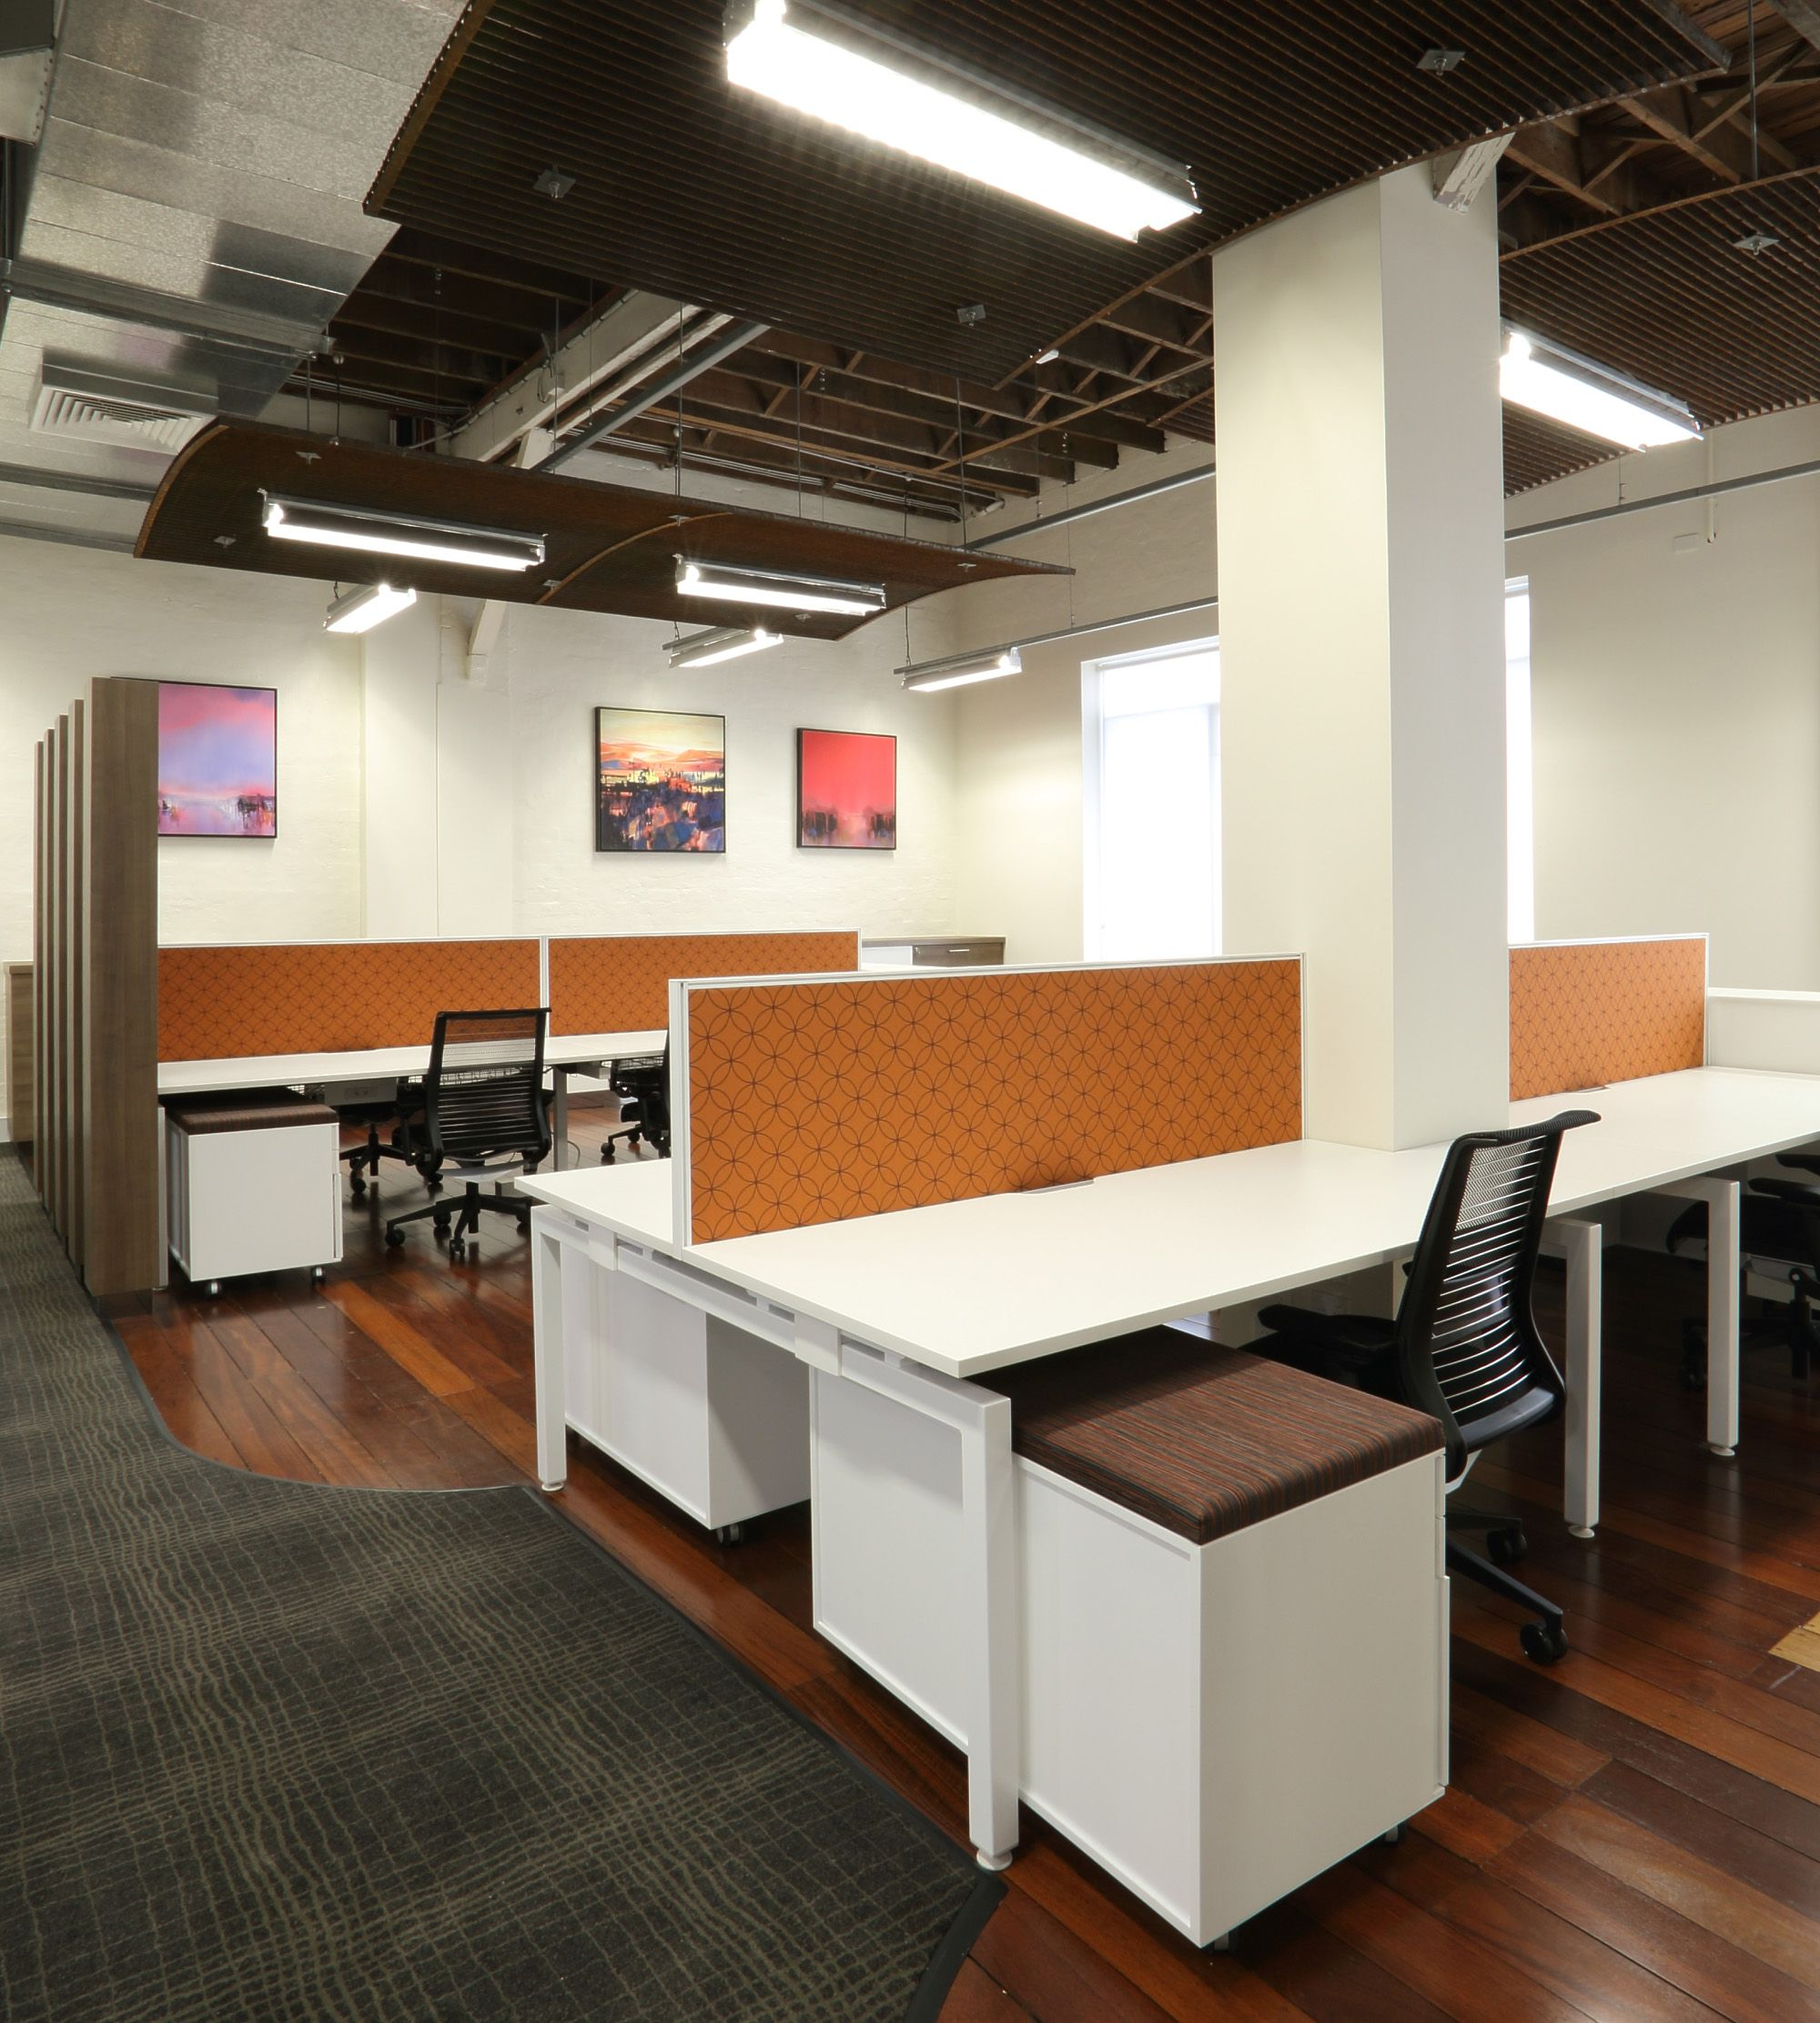 Commercial Office Design Fitout Bellfort Process Commercial Office Design Office Interior Design Corporate Office Design